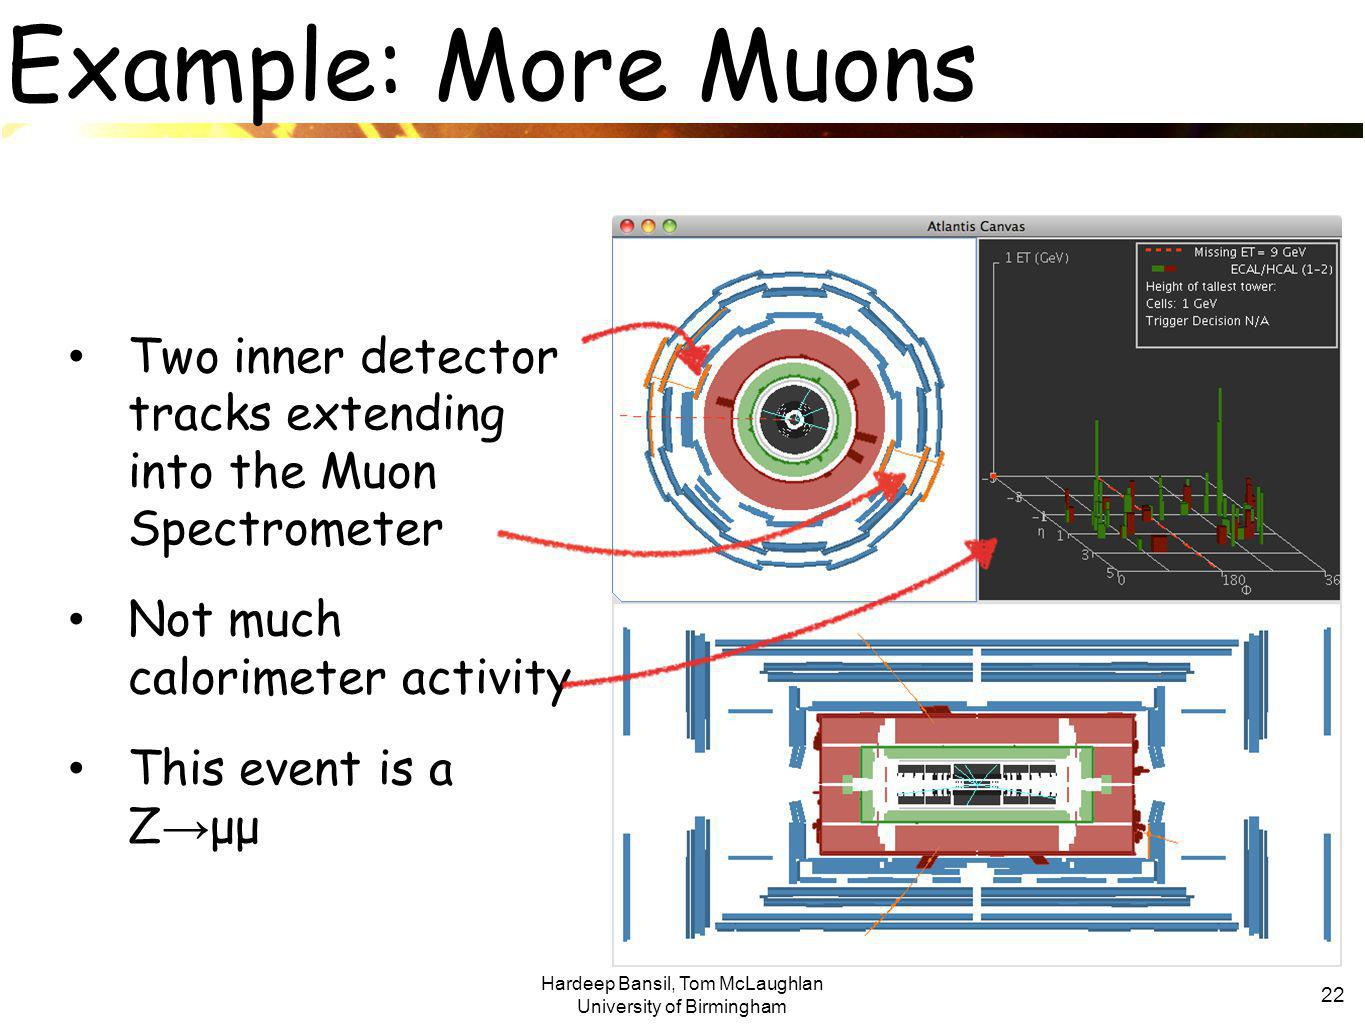 Hardeep Bansil, Tom McLaughlan University of Birmingham 22 Example: More Muons Two inner detector tracks extending into the Muon Spectrometer Not much calorimeter activity This event is a Z → μμ